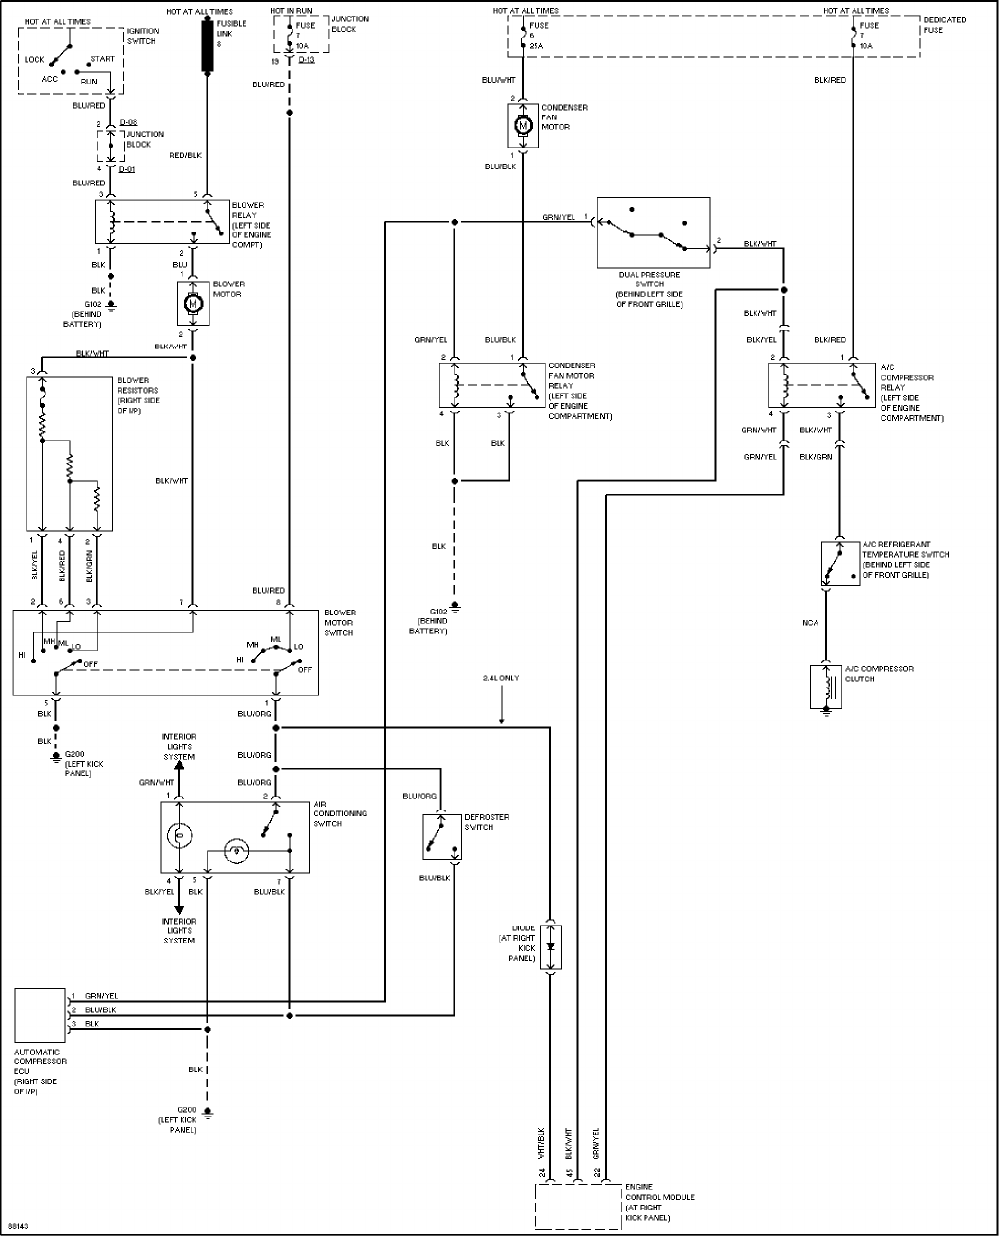 Mitsubishi Montero 1997 Misc. Document Wiring Diagrams PDF